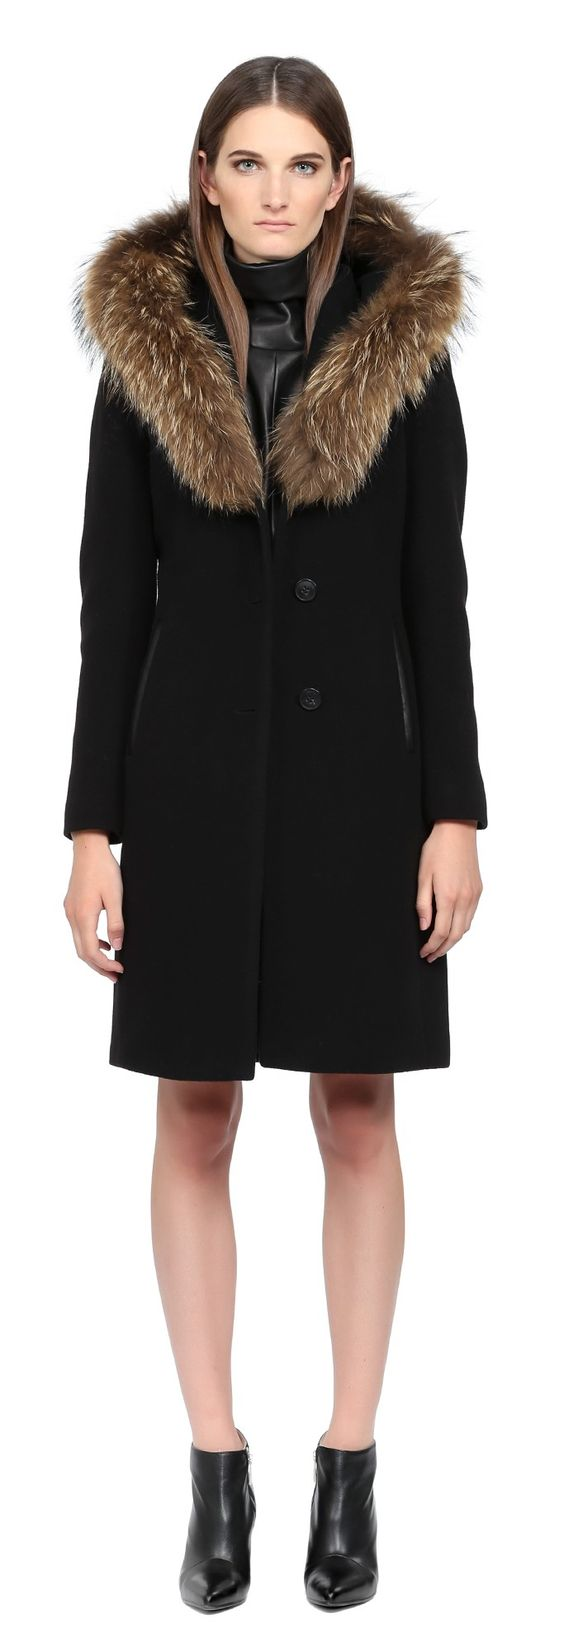 Mackage - ANDIE | BLACK LONG WOOL COAT WITH FUR HOOD FOR WOMEN